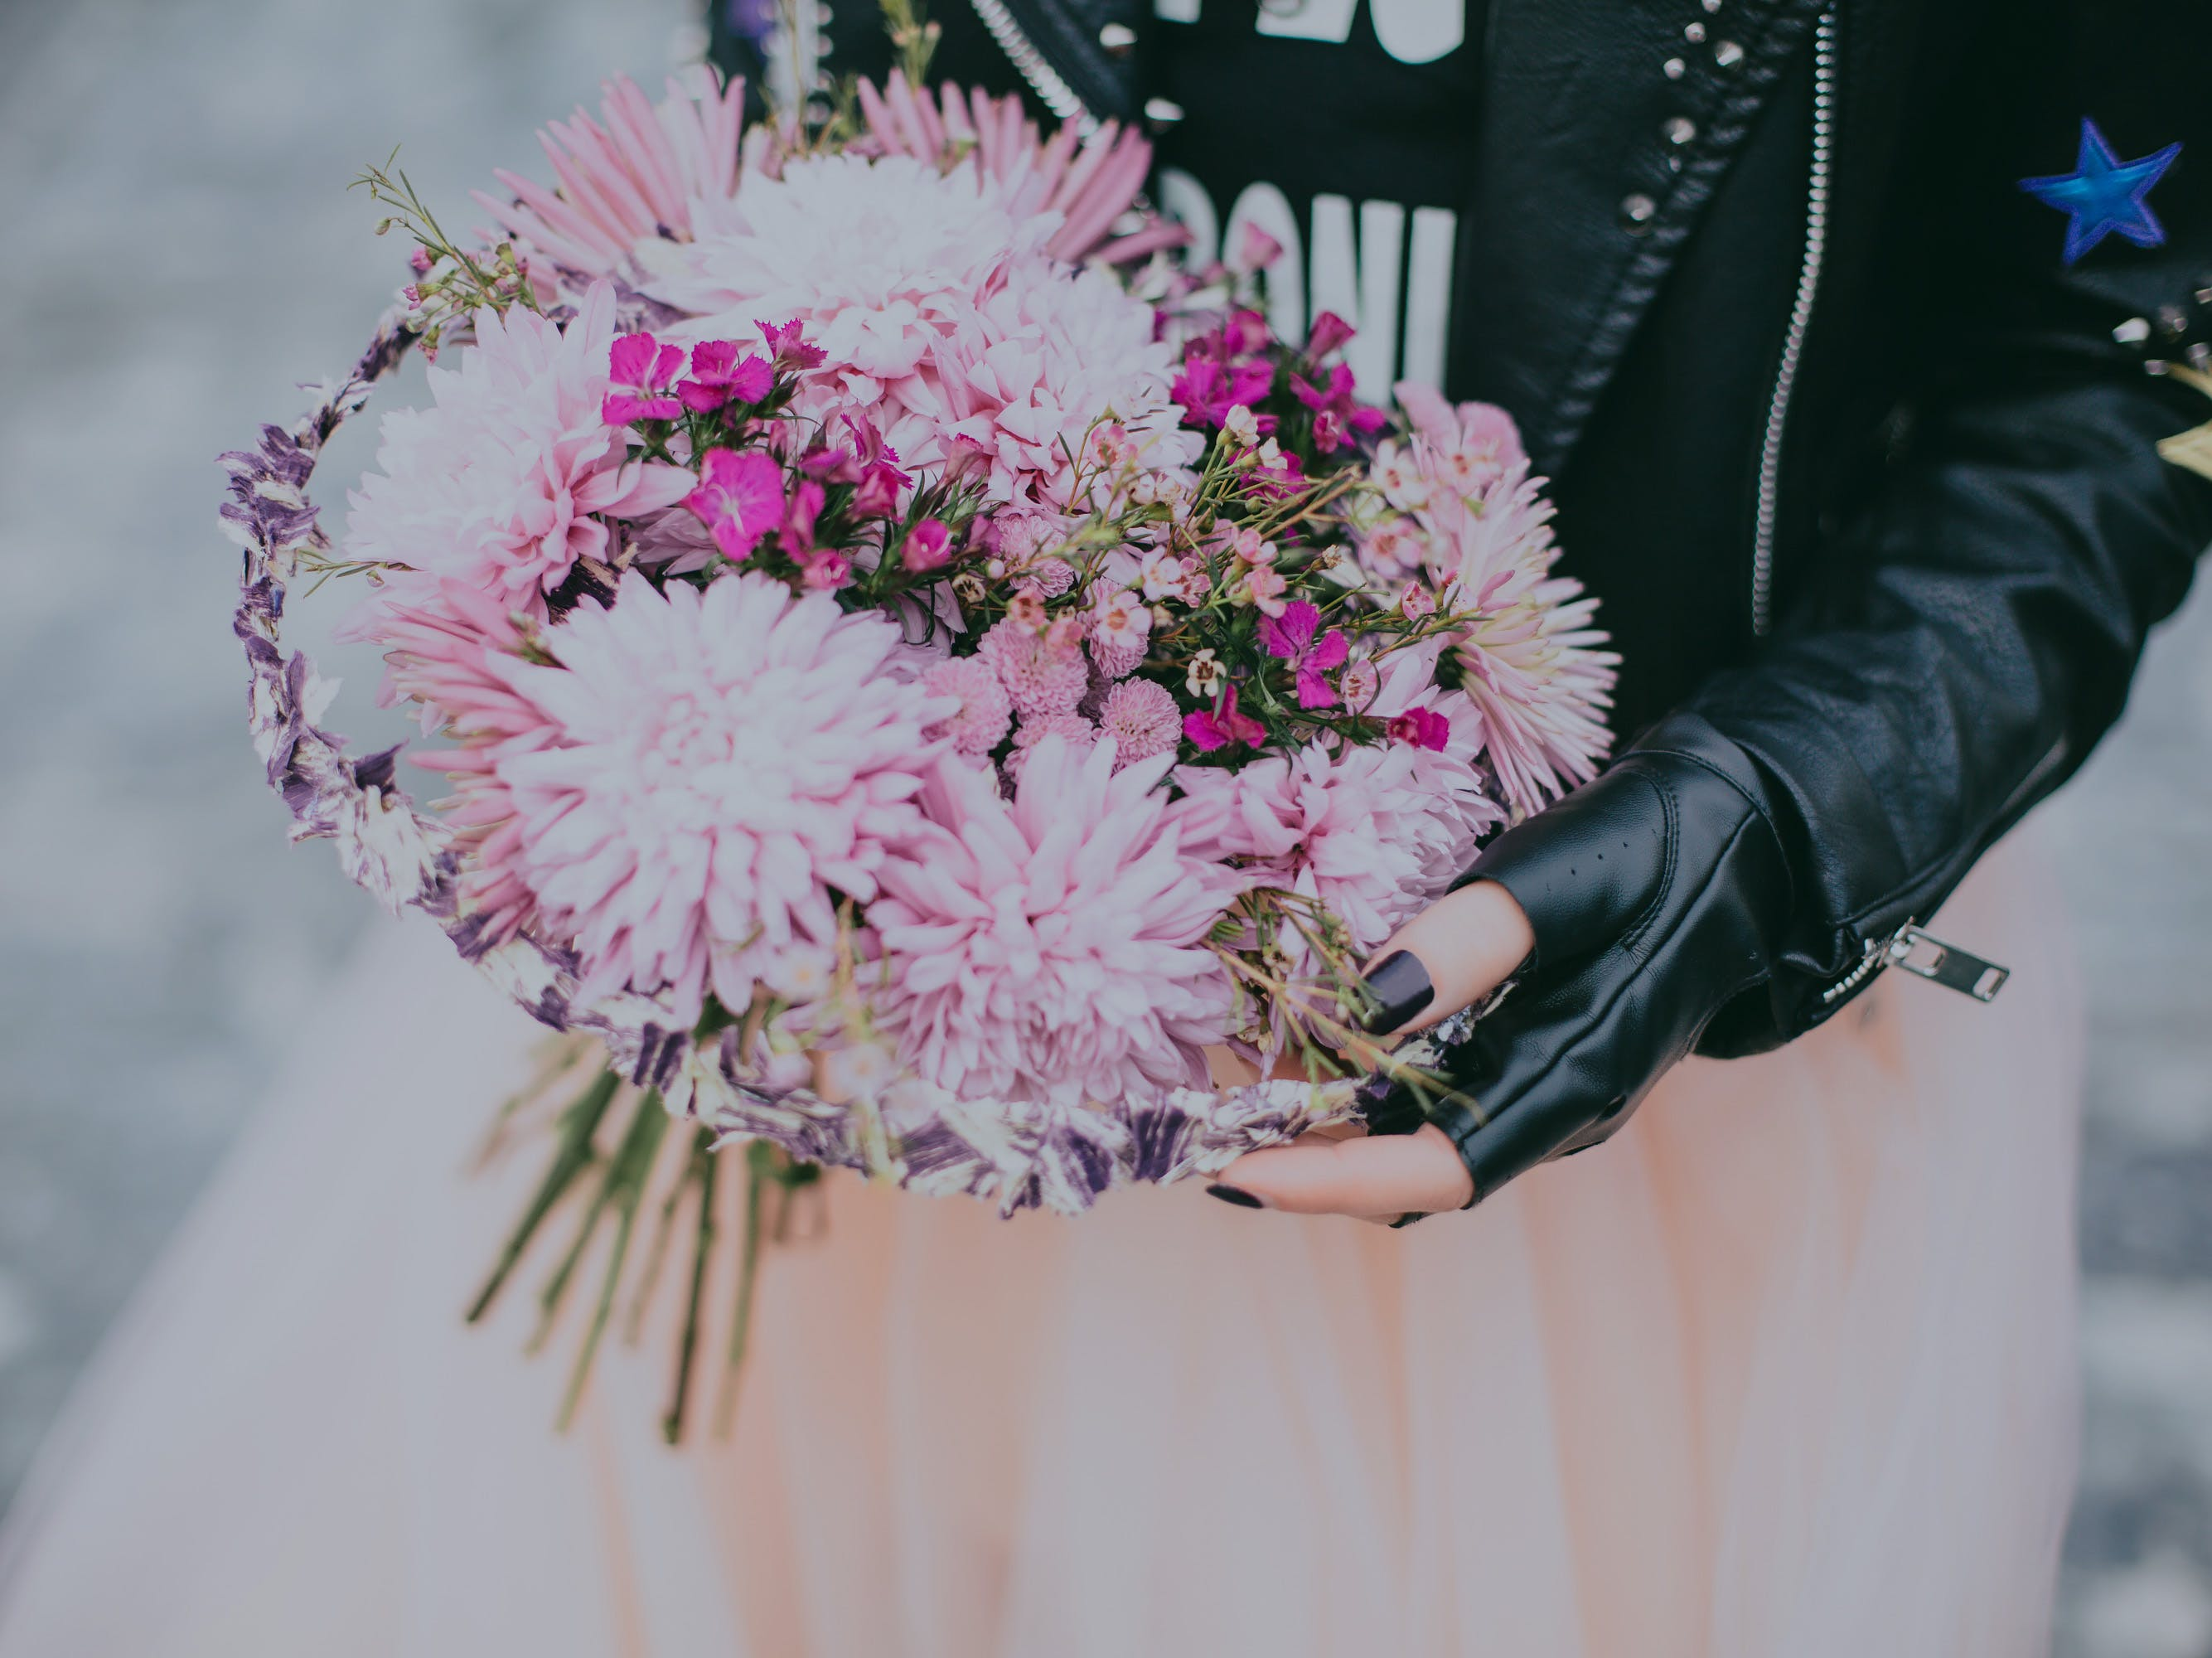 Person in Black Leather Jacket Pink and Red Flower Bouquet